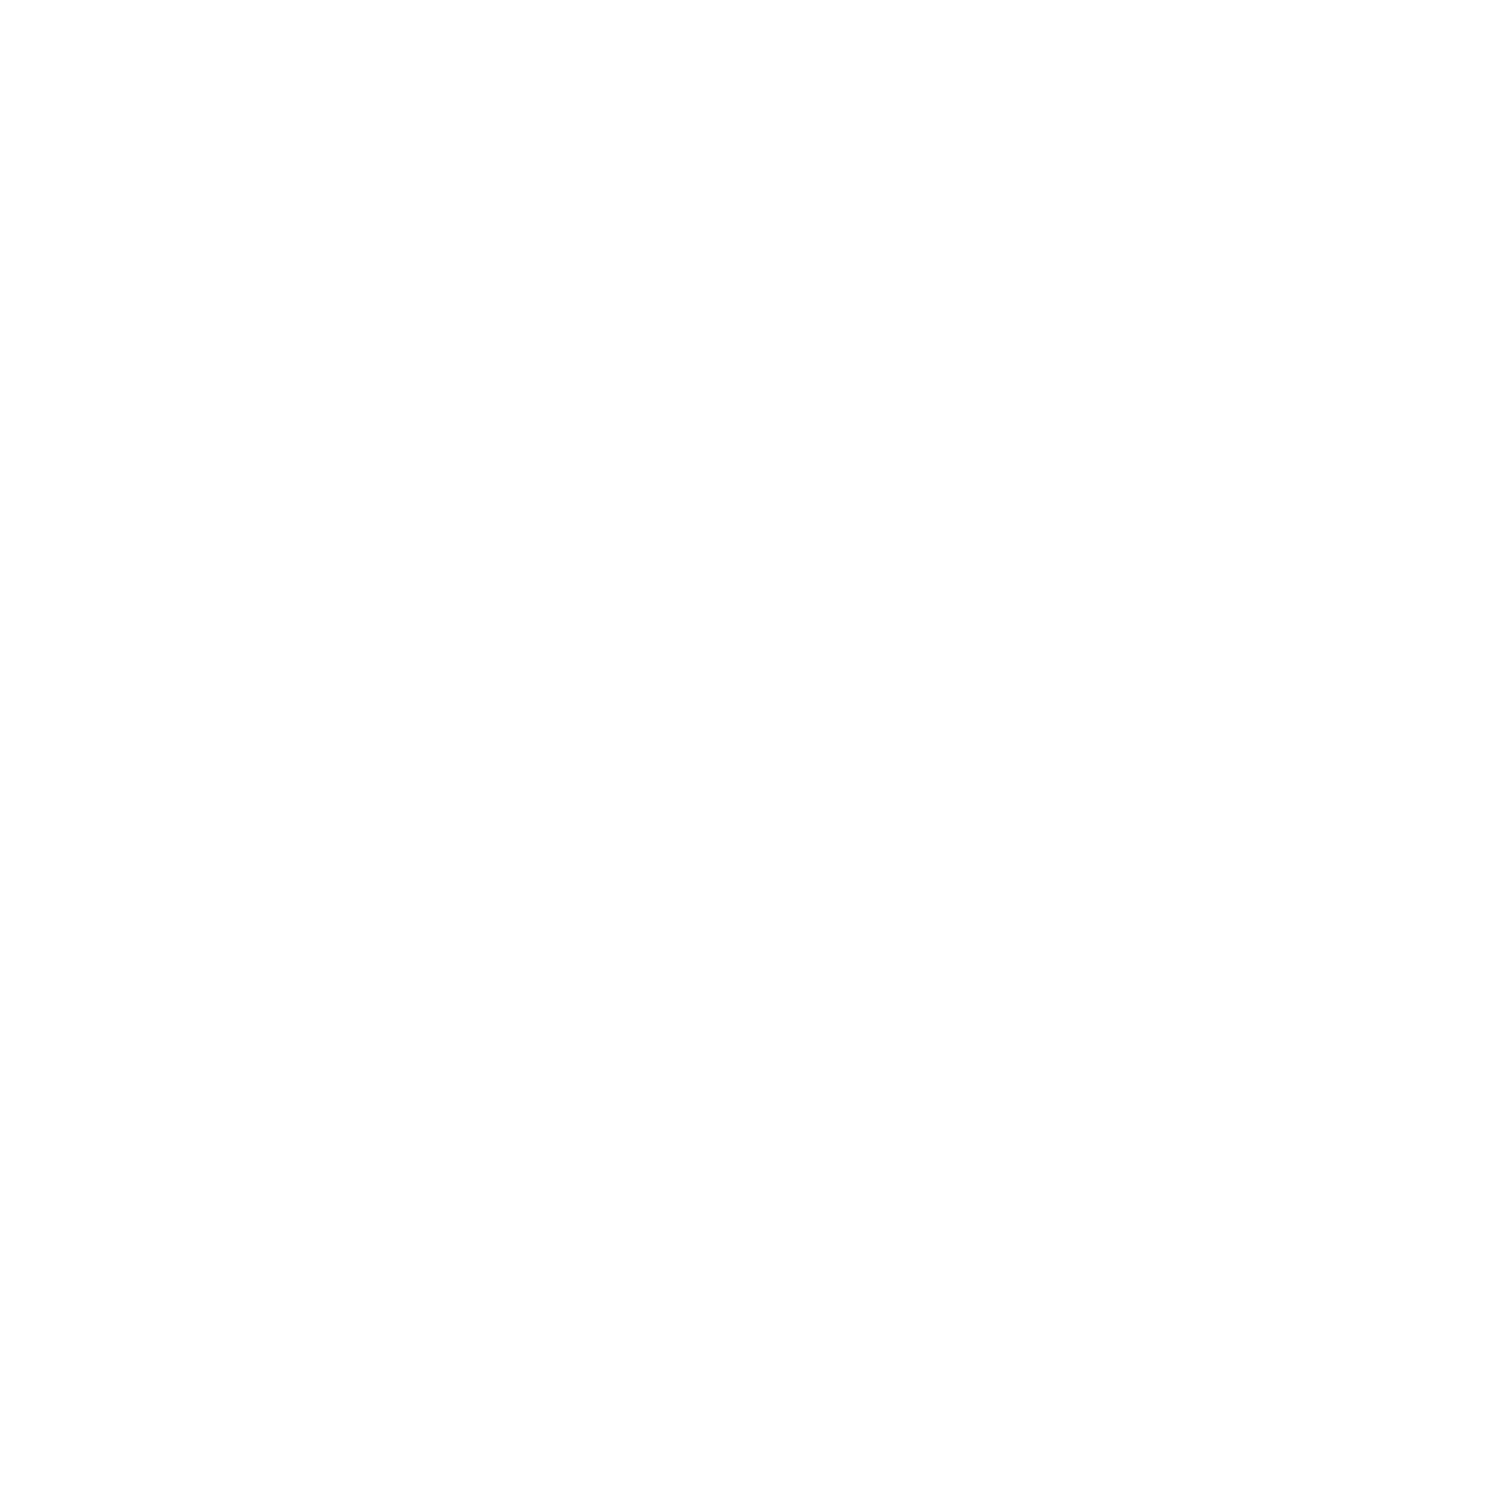 GOODLIFE CHURCH